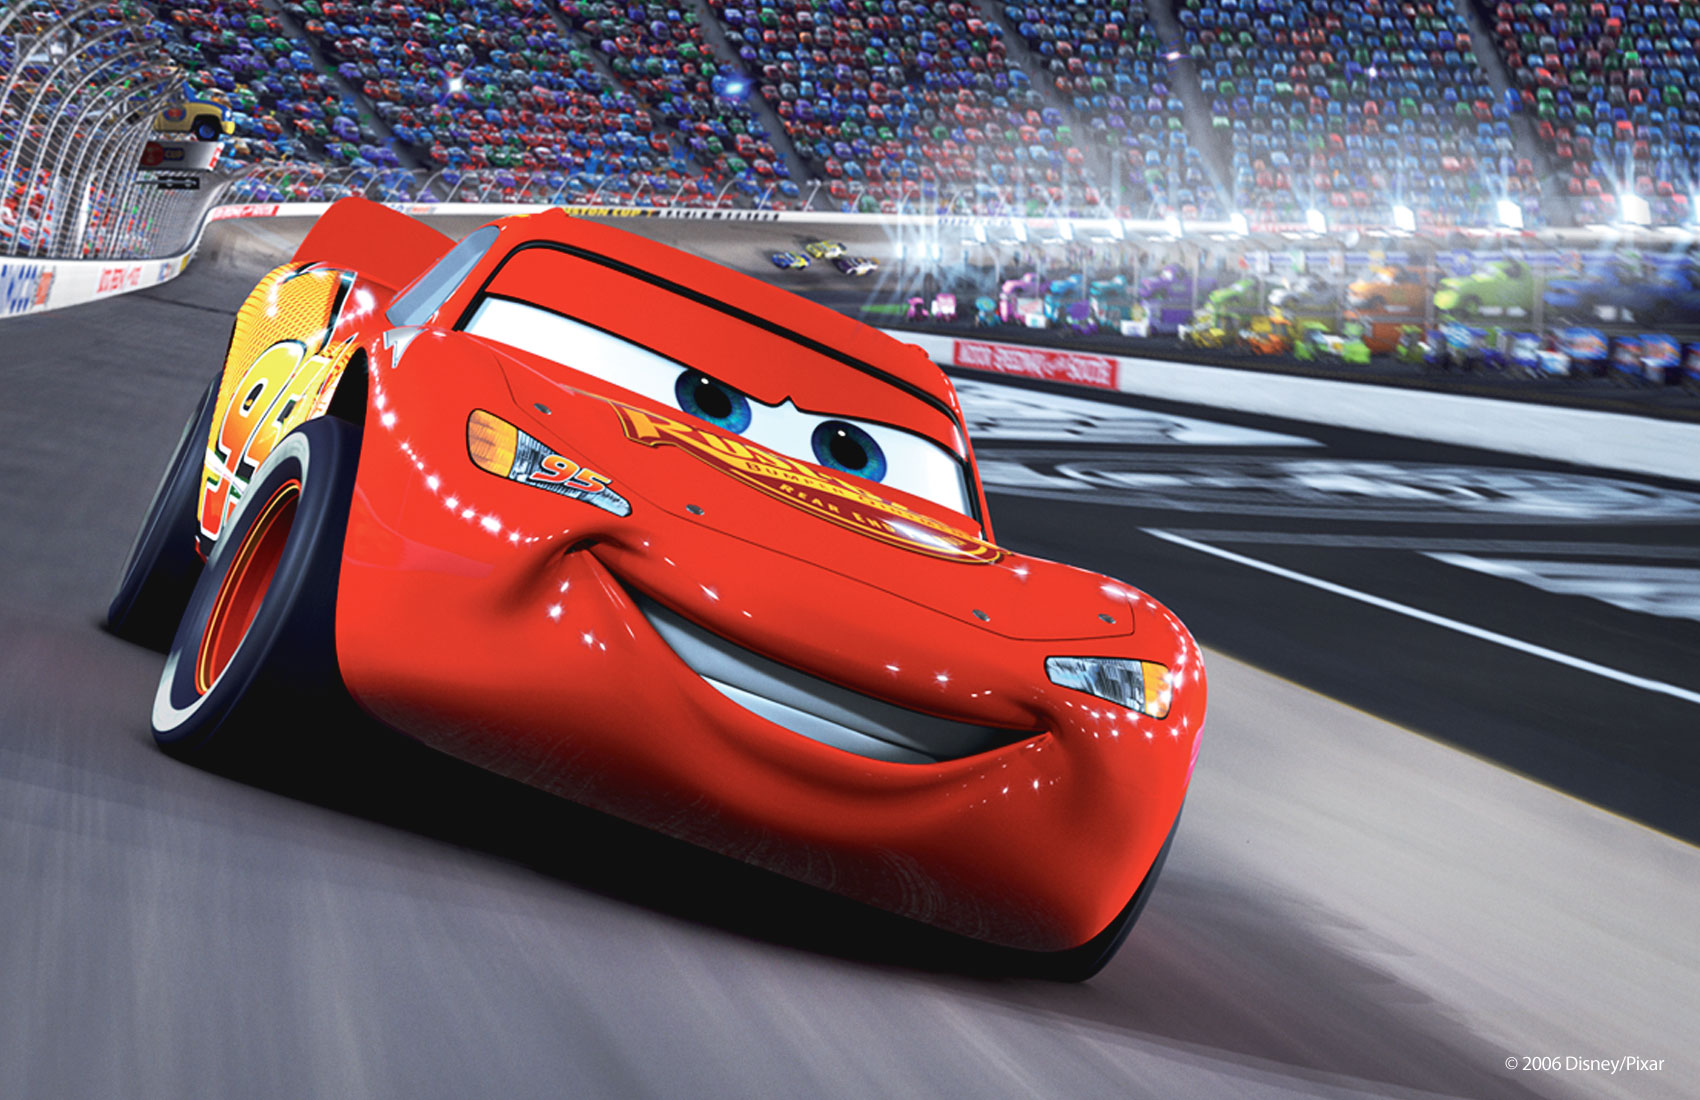 Lightning mcqueen photo - 4